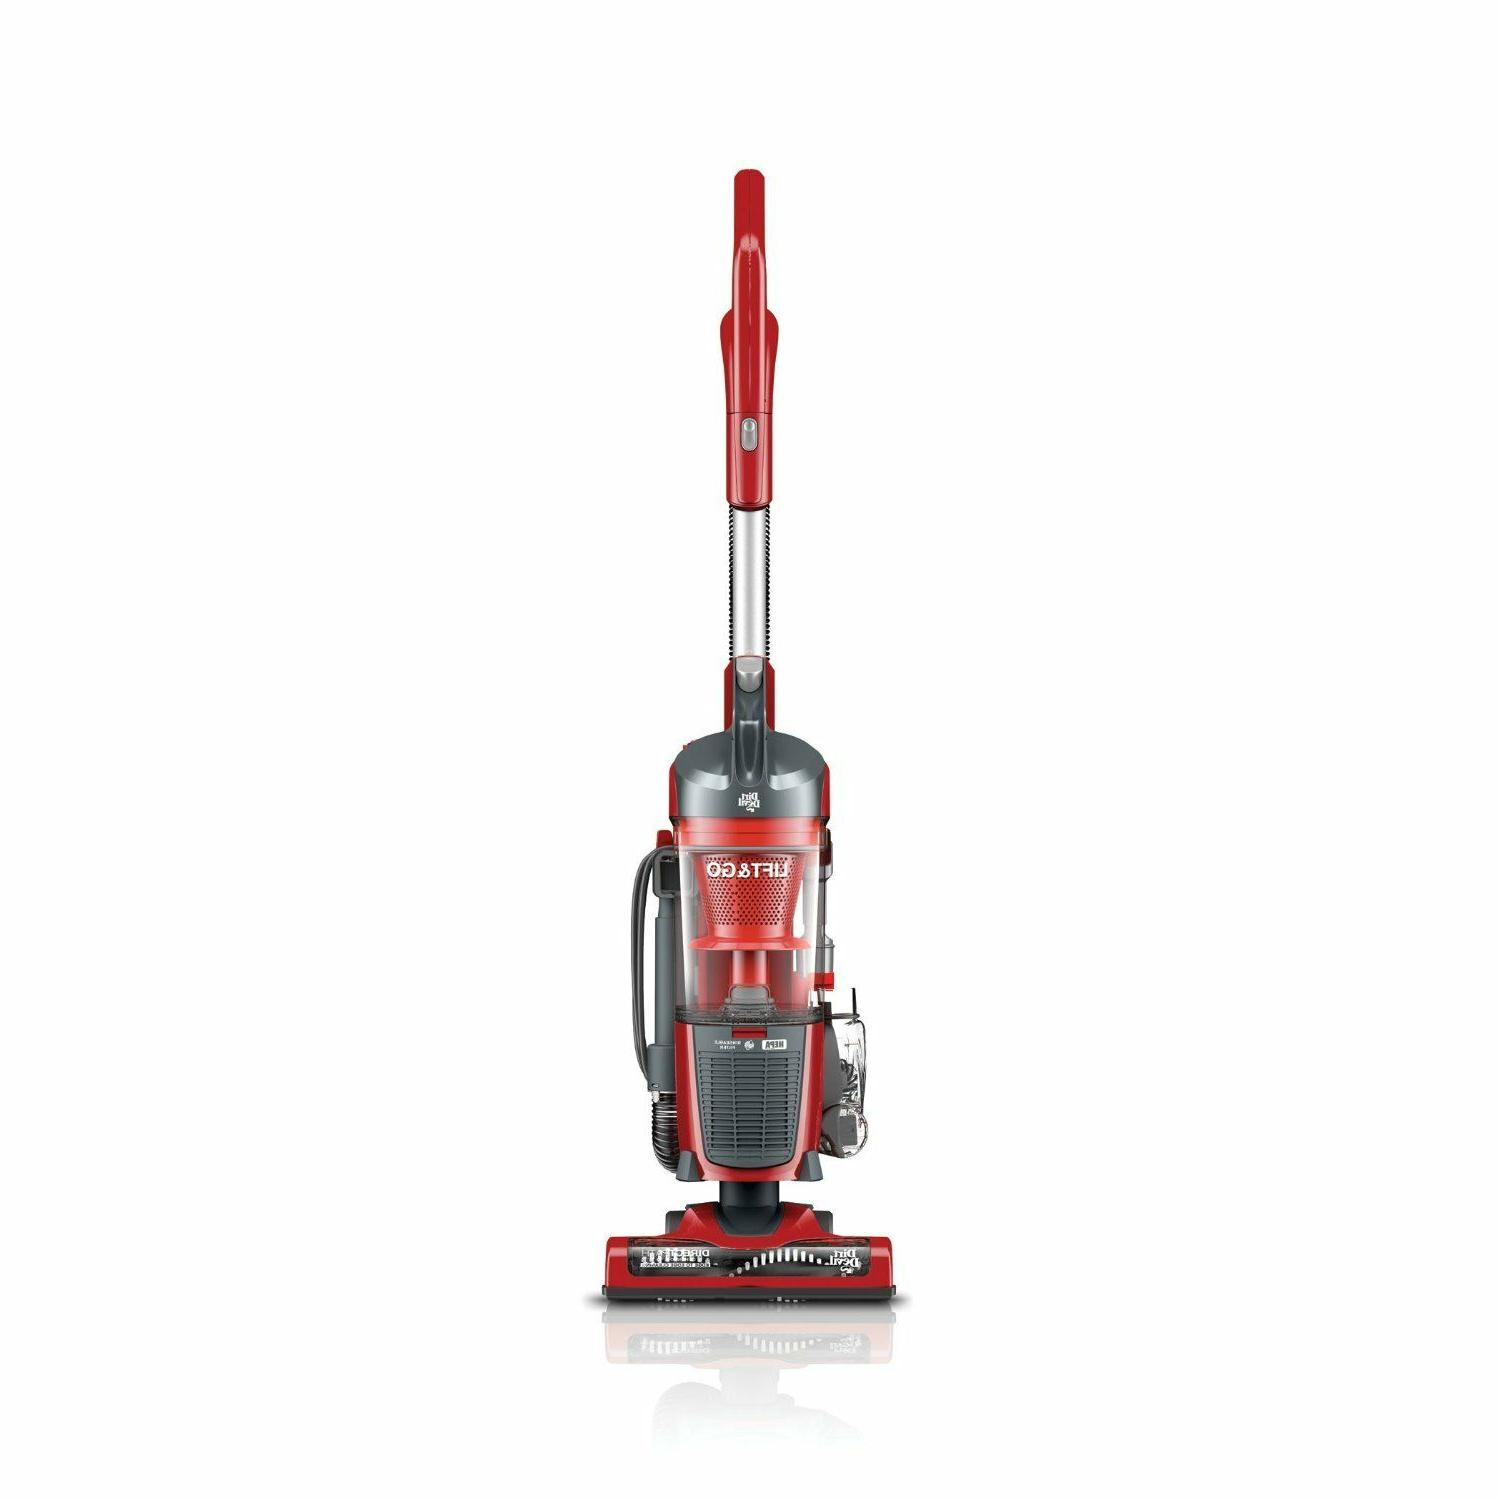 Dirt Devil Lift and Go Vacuum with Swipes, Red - Corded